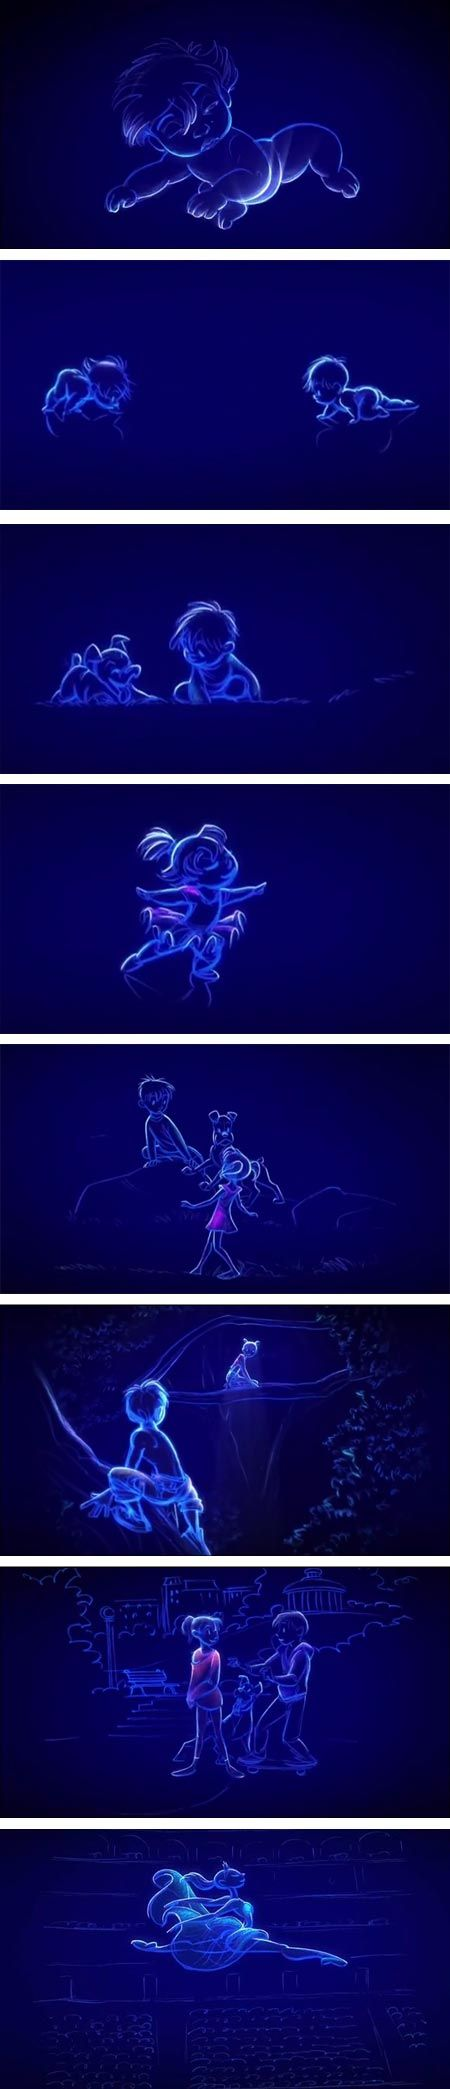 Duet, Glen Keane awesome animated short film